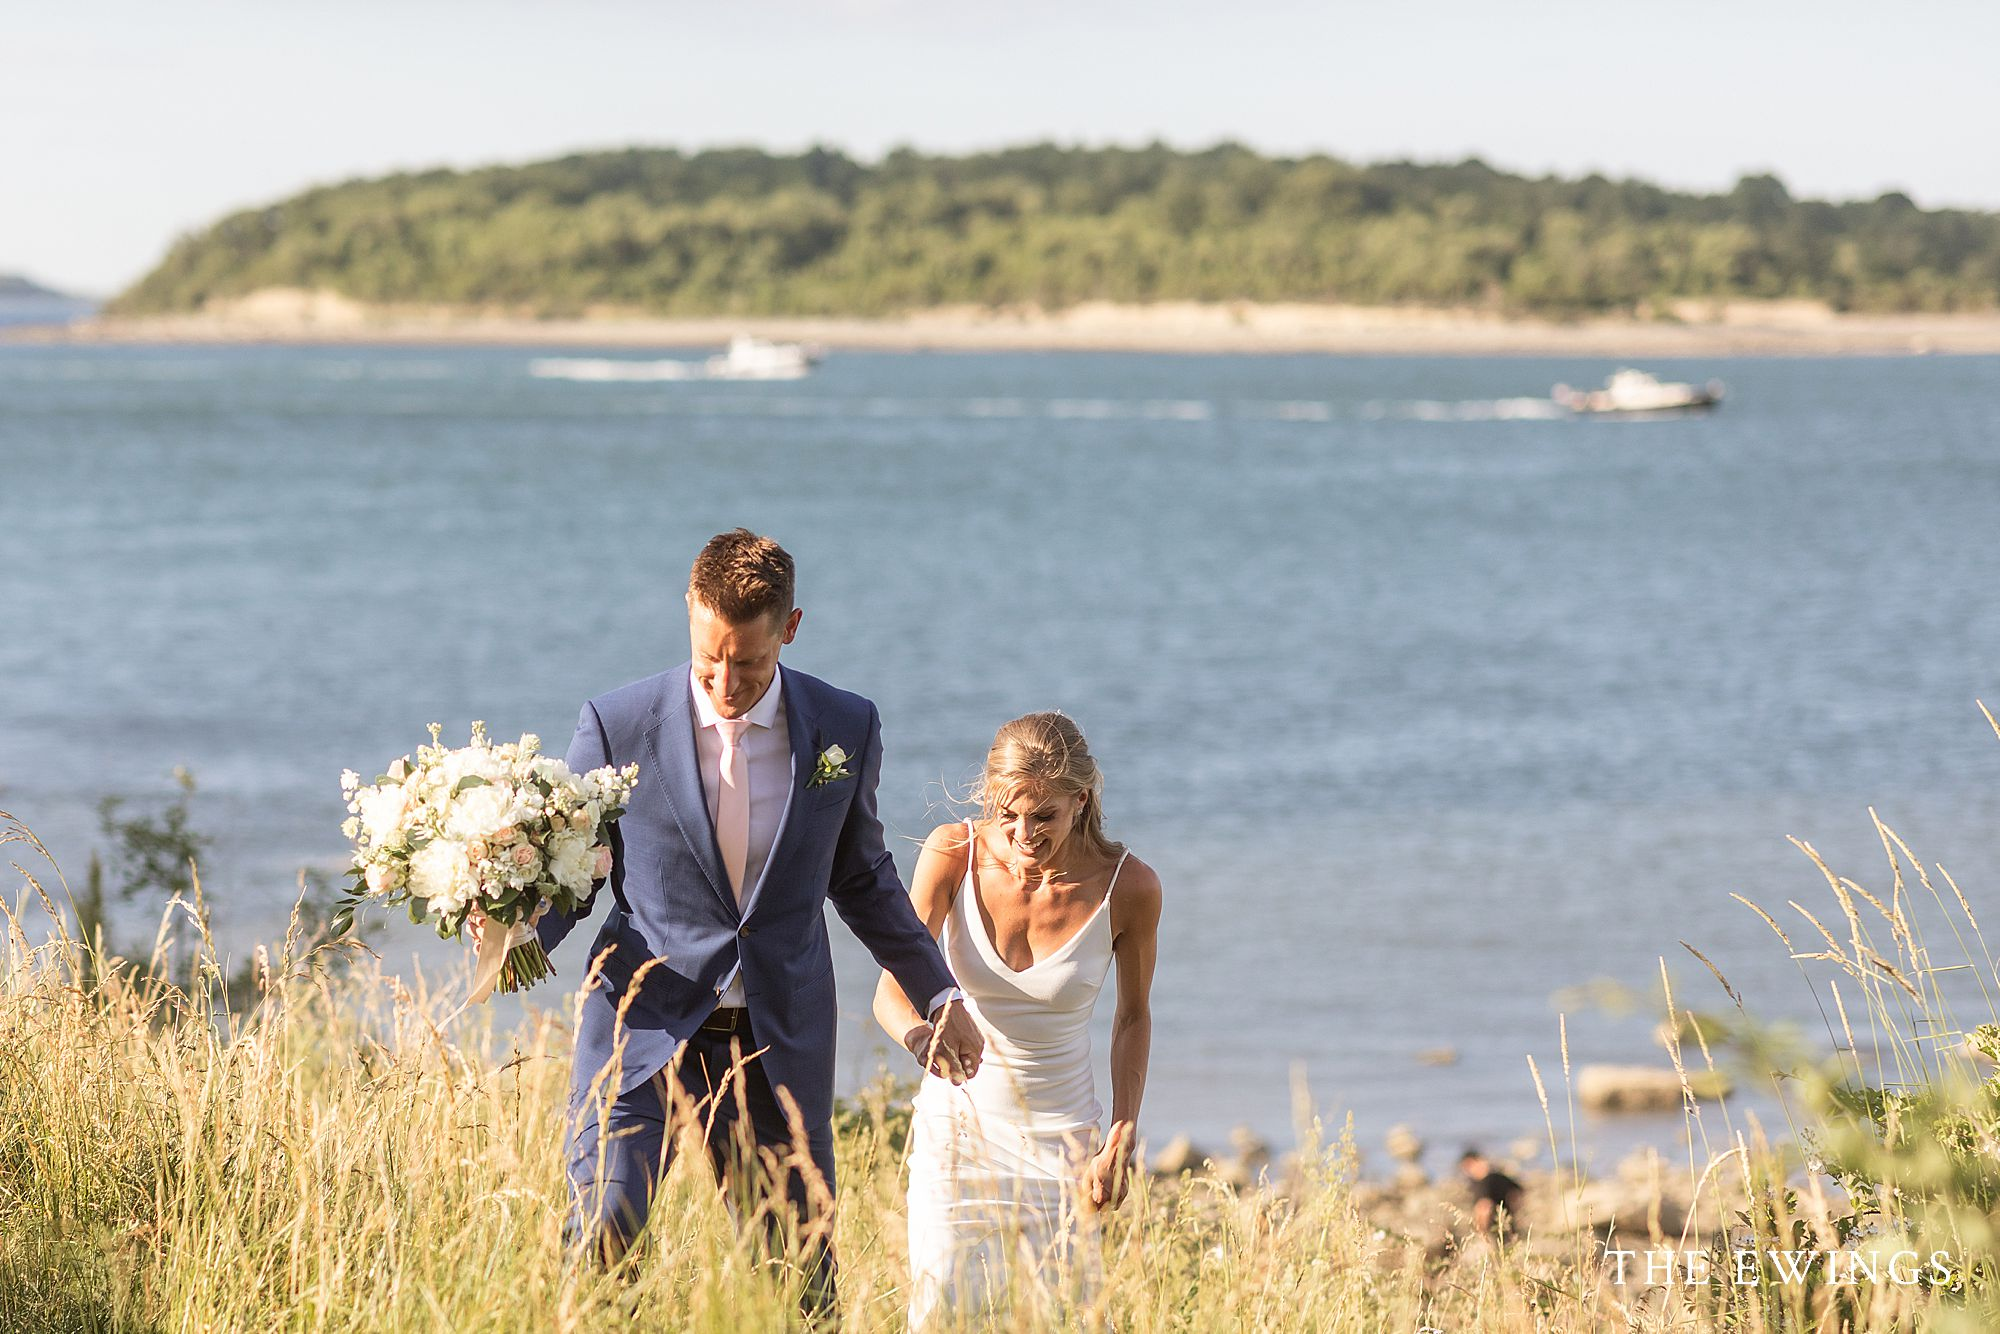 Bride and groom and views of the Boston Harbor Islands after their intimate micro wedding ceremony on Nut Island in Quincy.